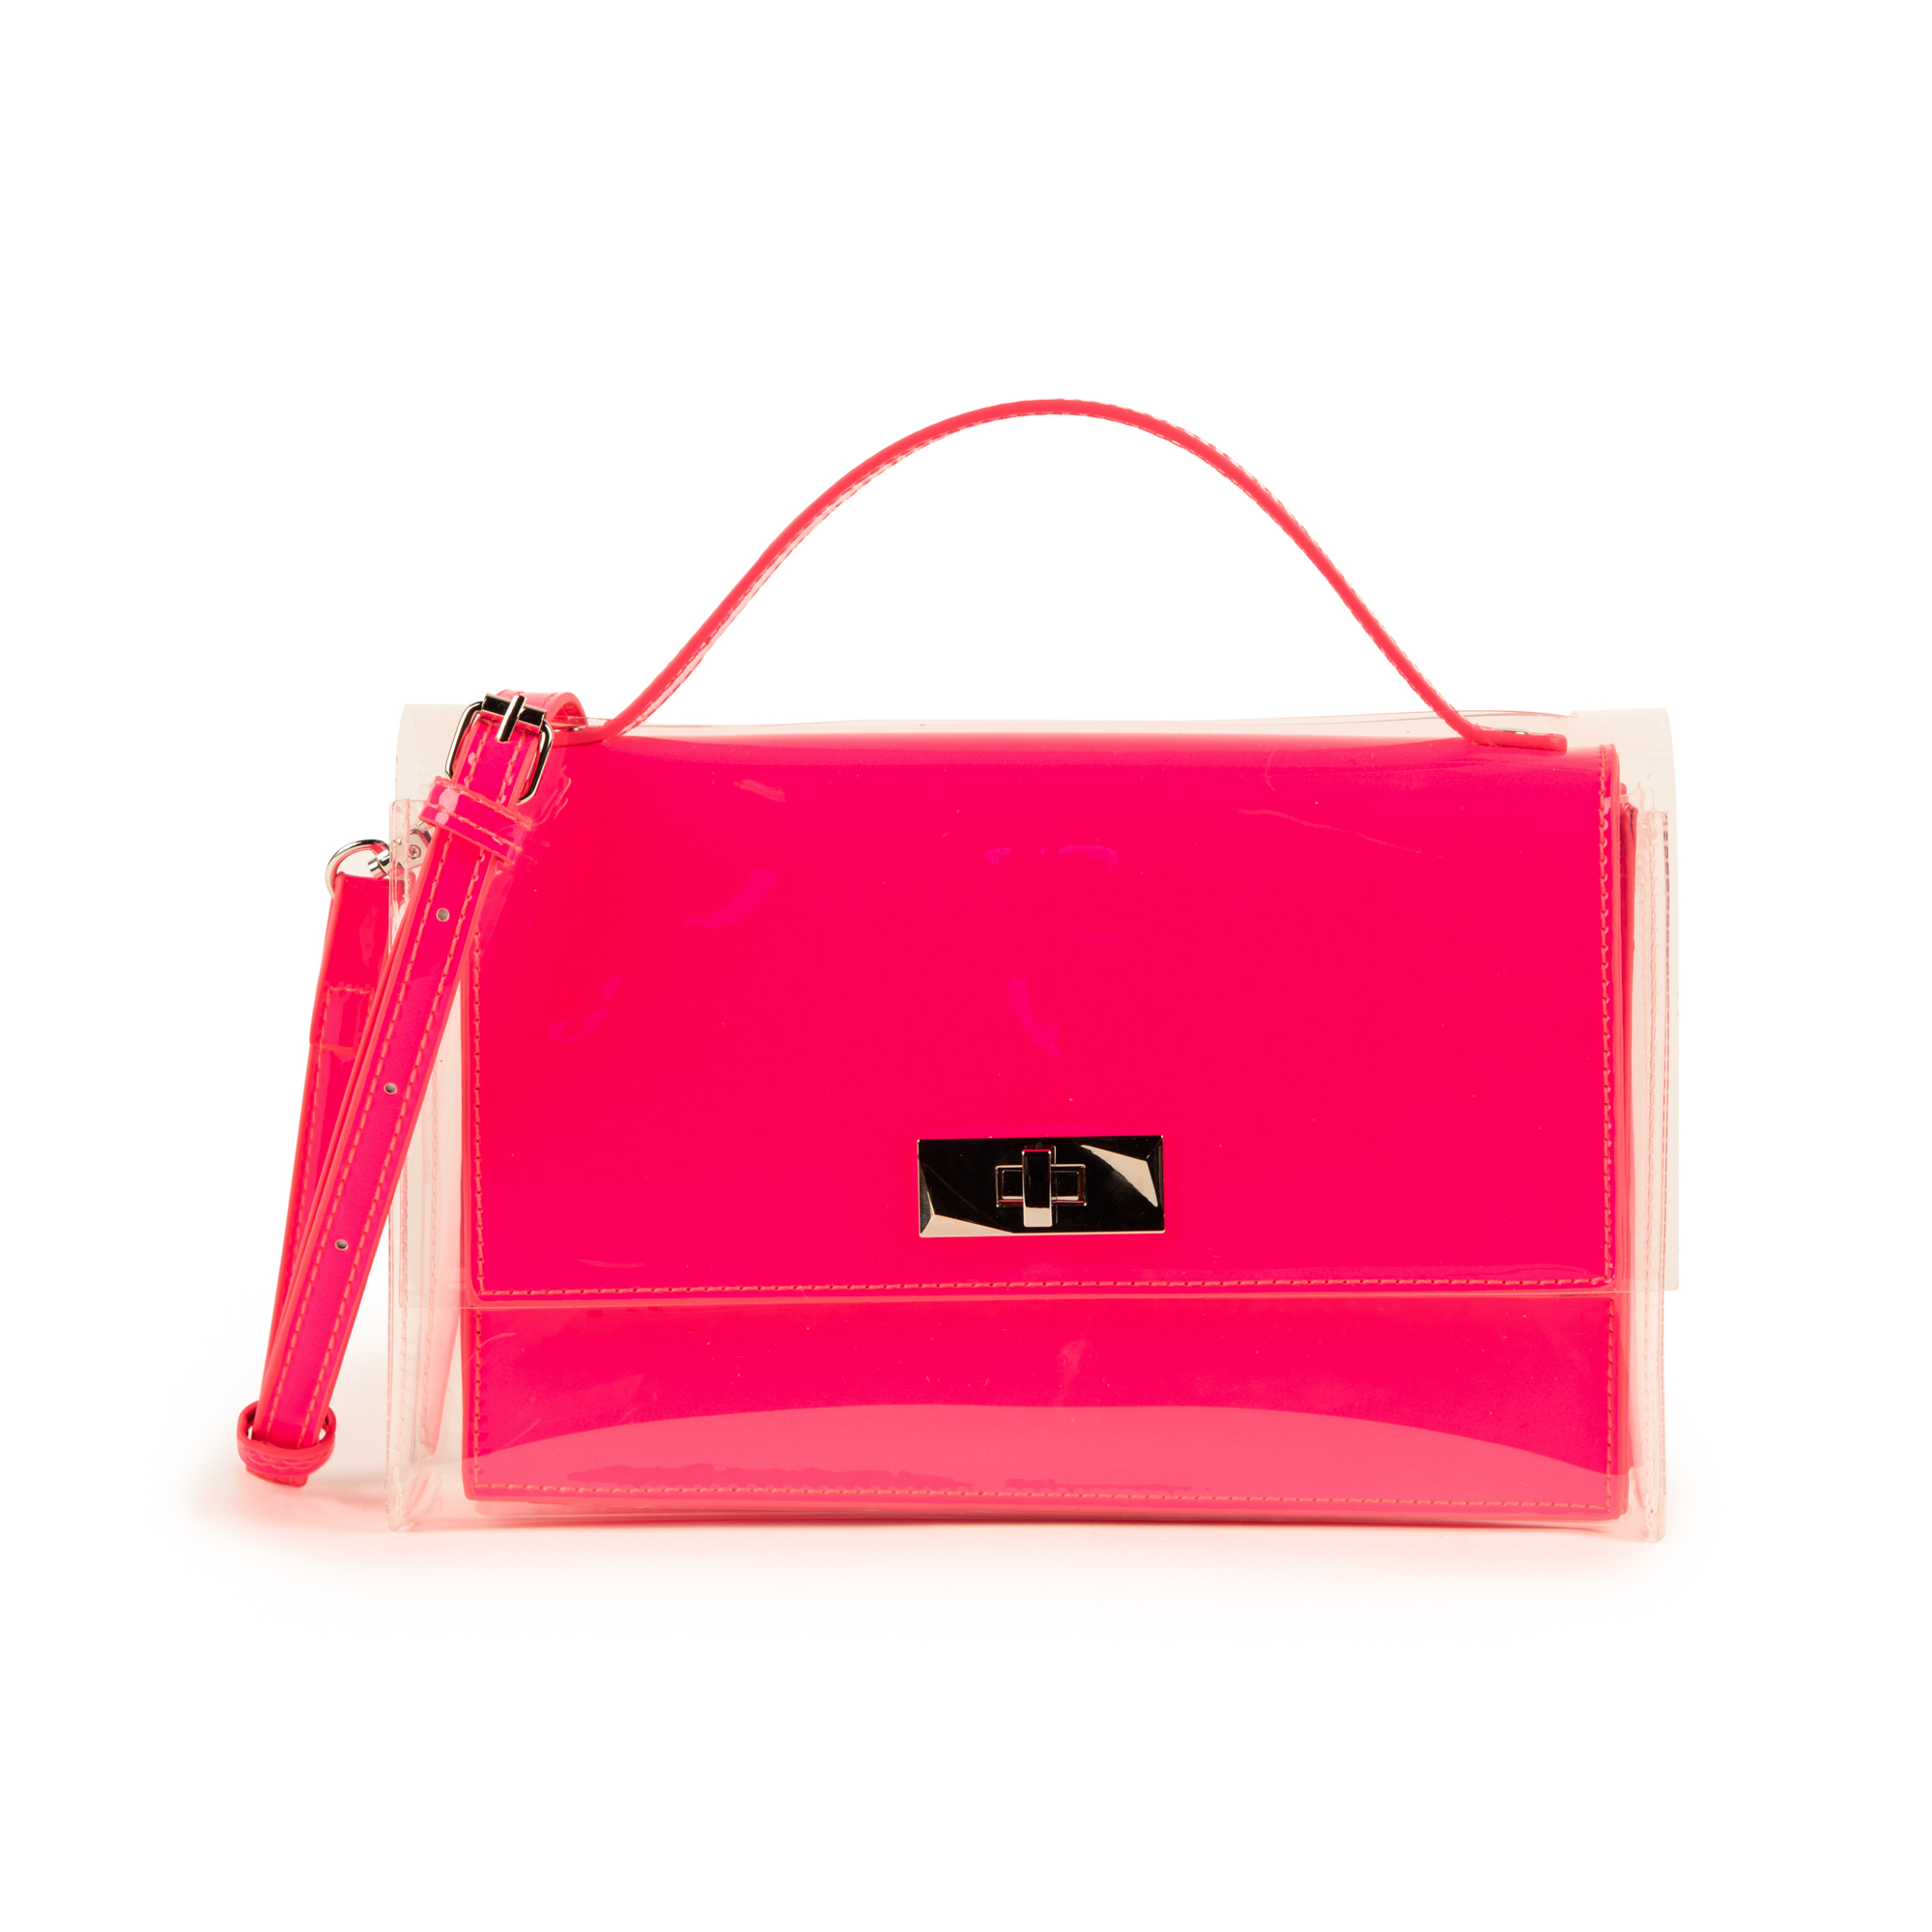 Mini bag fucsia in vernice e pvc